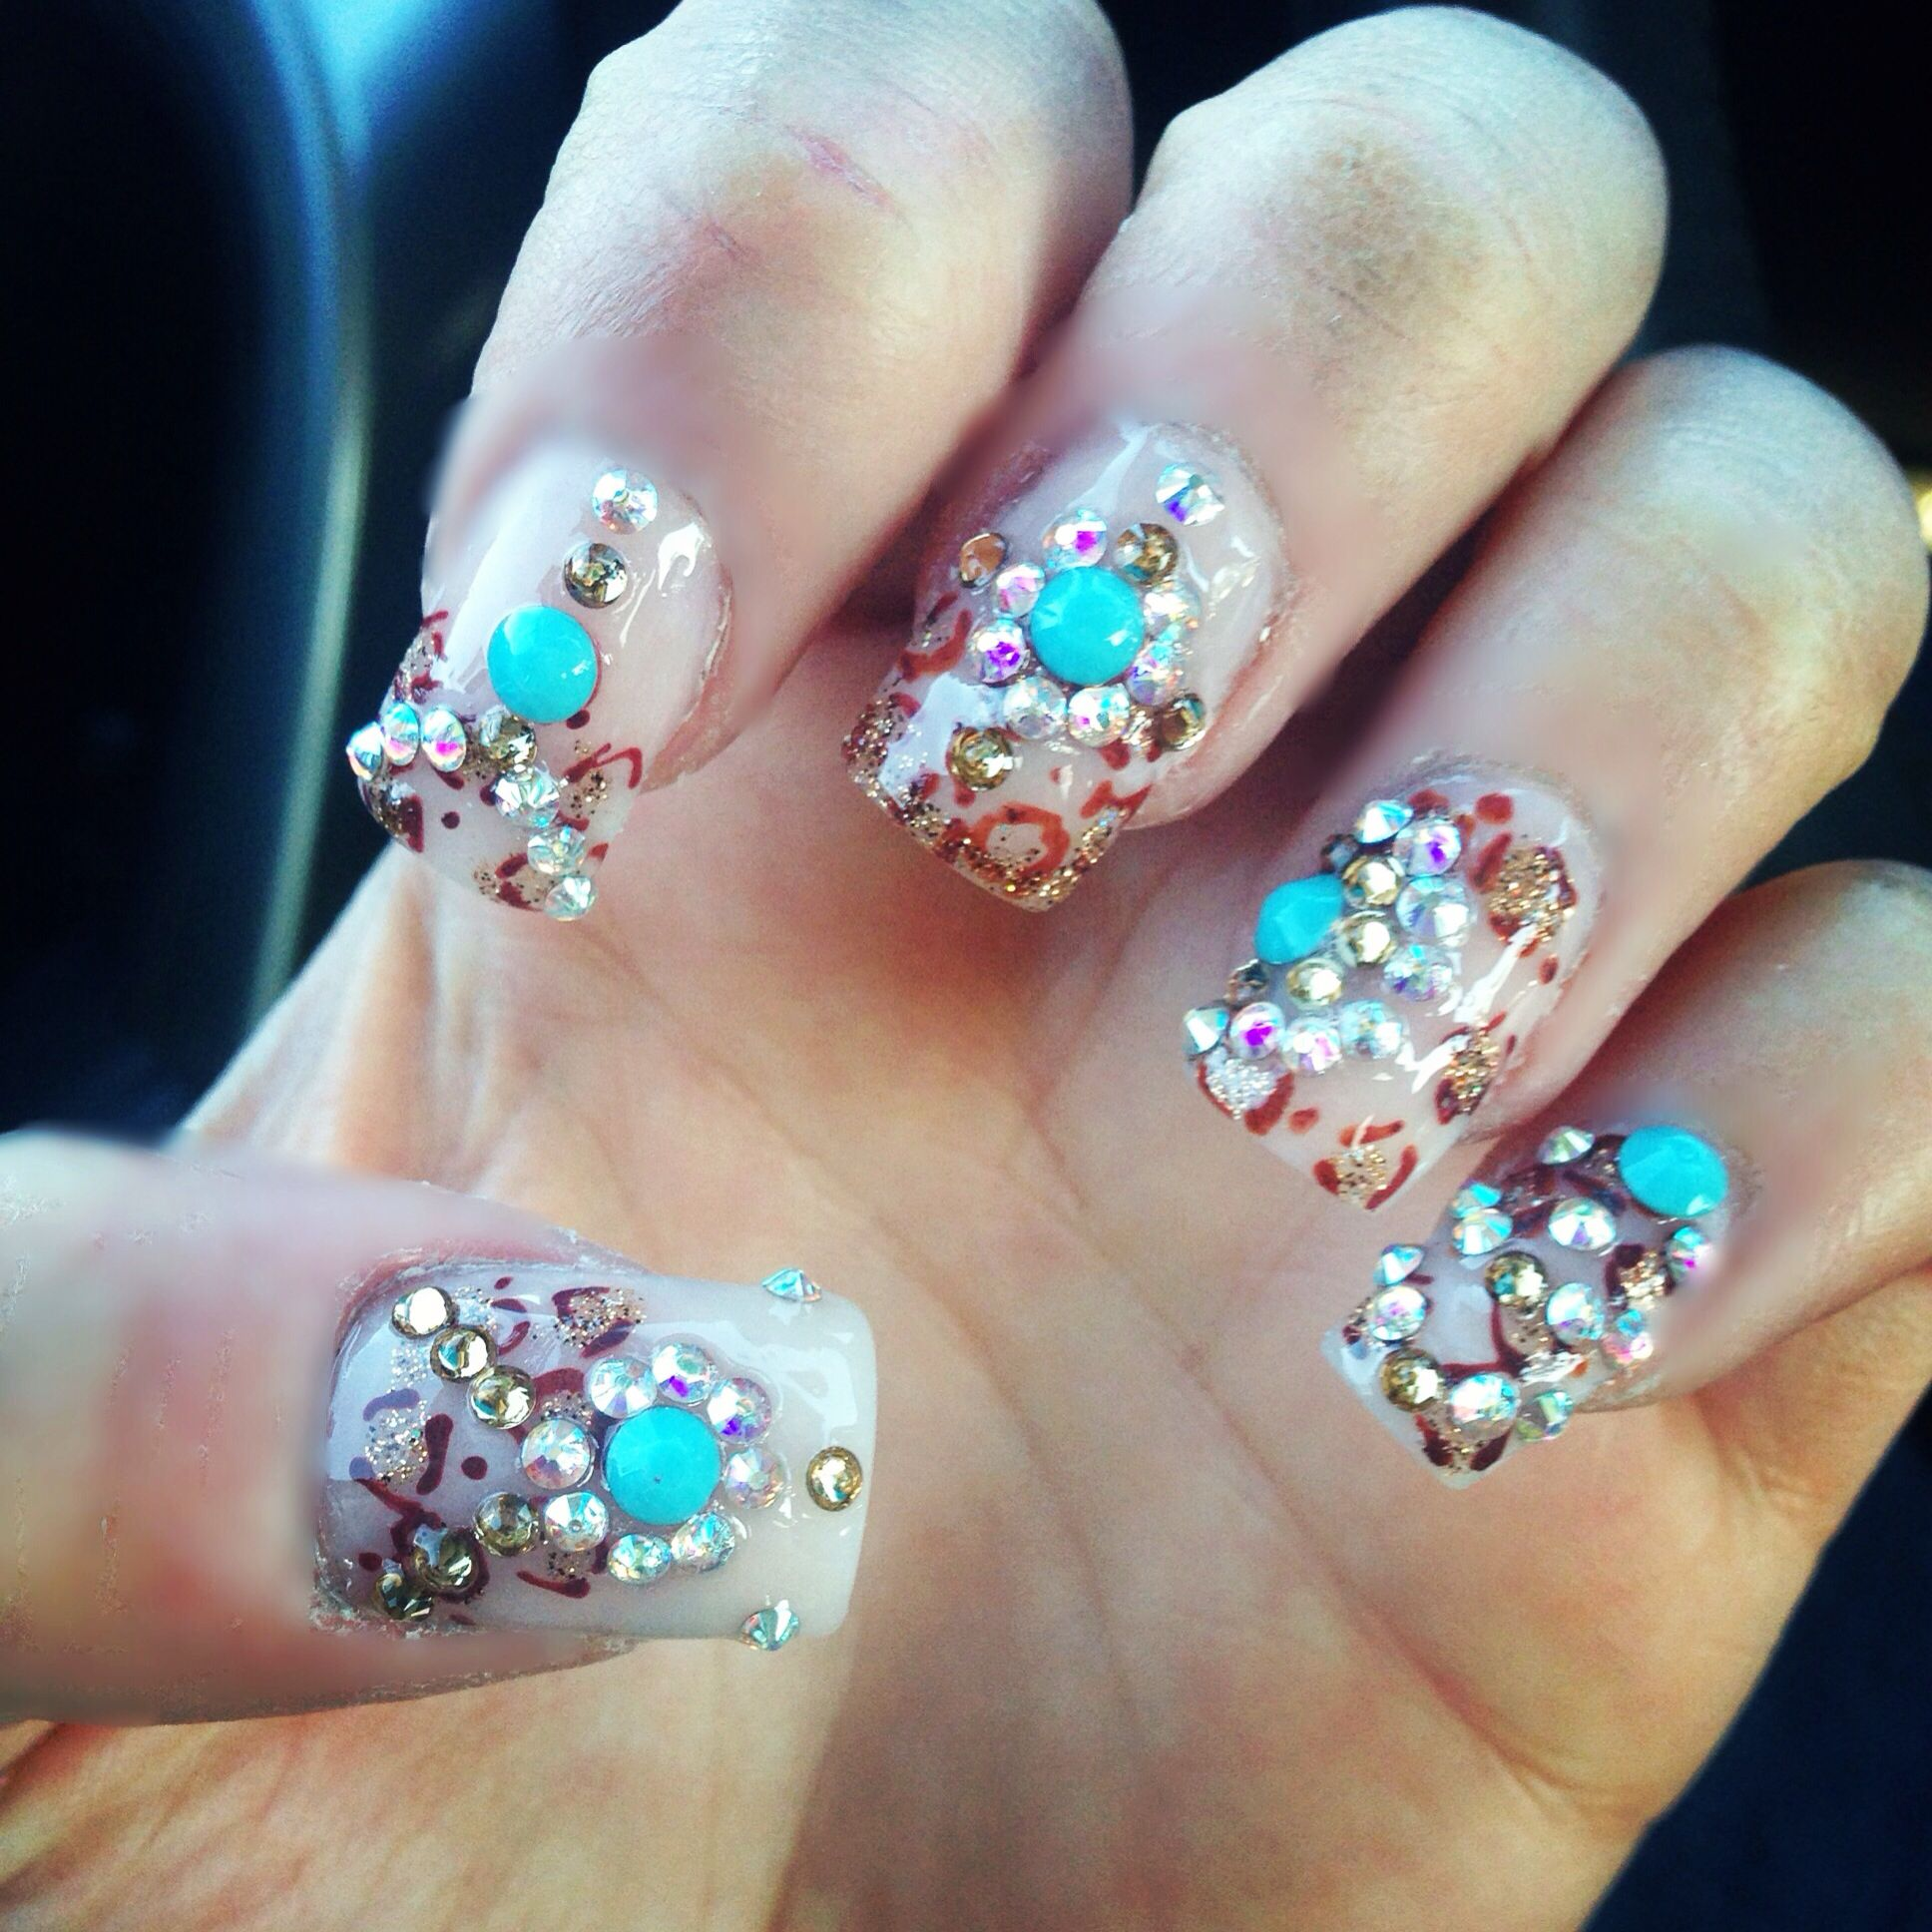 3D nails from blue diamond nails, leopard and turquoise | Nails ...